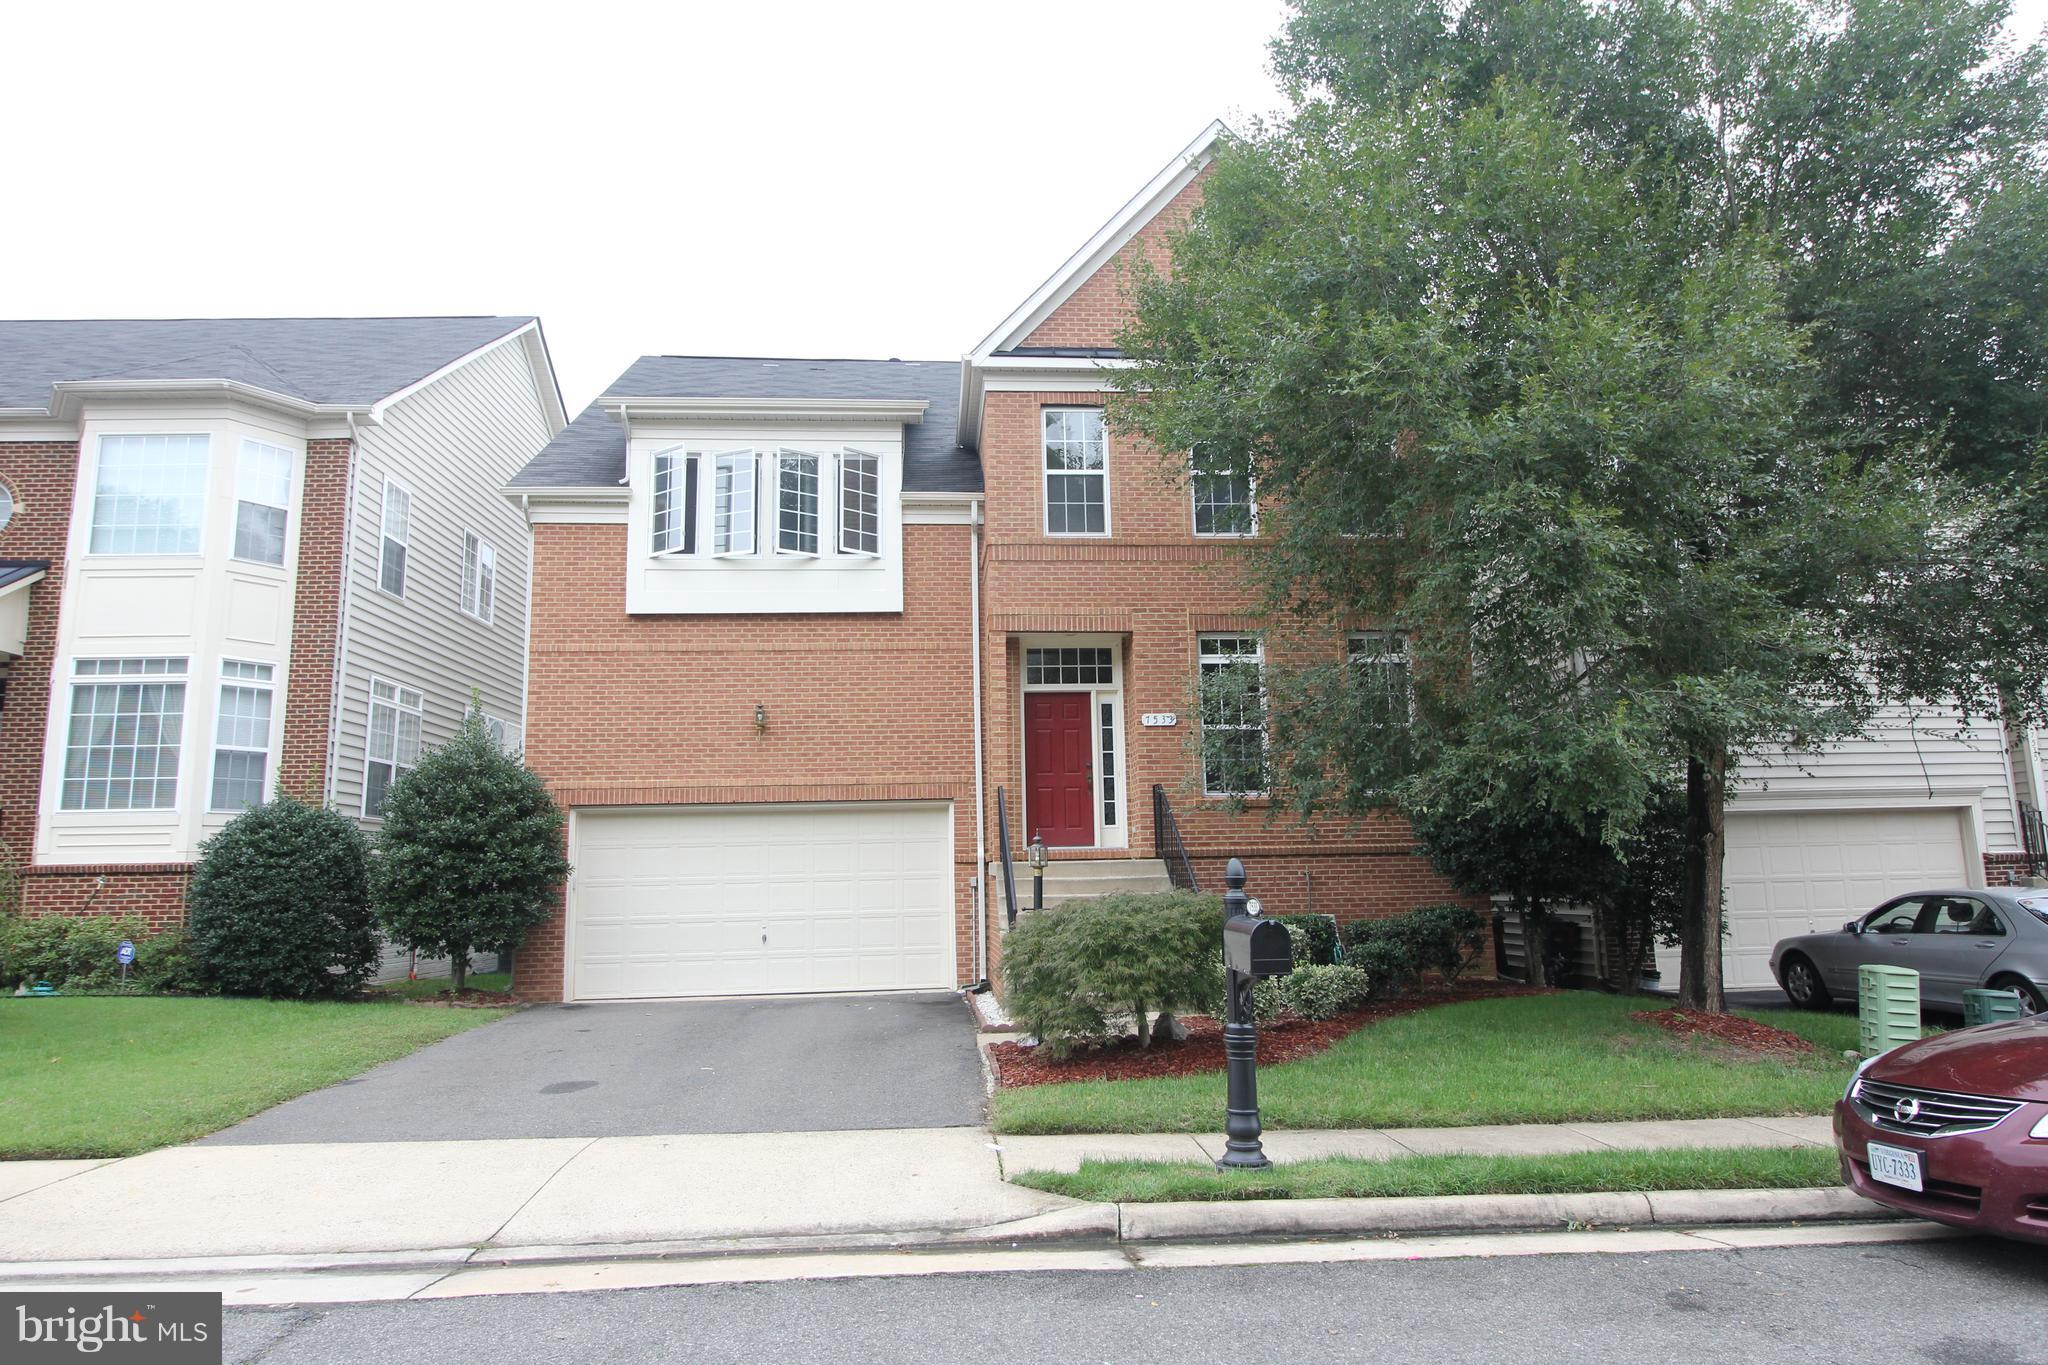 HUGE 4 BR ONLY 3 MI FROM OLD TOWN 6 MI TO DC. INCLUDES HRDWD FLS, CUSTOM WD BLINDS, UPGR APPL. GREAT FOR A FAMILY AND ENTERTAINING. SEP FRML DIN RM, LARGE FAM RM MASSIVE MSTR STE. NEW STOVE COOK W/ GAS IN THE KITCH OR ON THE GRILL ON THE NEW LIGHTED TREX DECK. FLASH PAINT 2 CAR GRG, PRVCY FENCE IN BACK FOR YOUR PUPPY! SUMMERS BY THE COMM. POOL! OPEN  SUN10/7 2-4PM